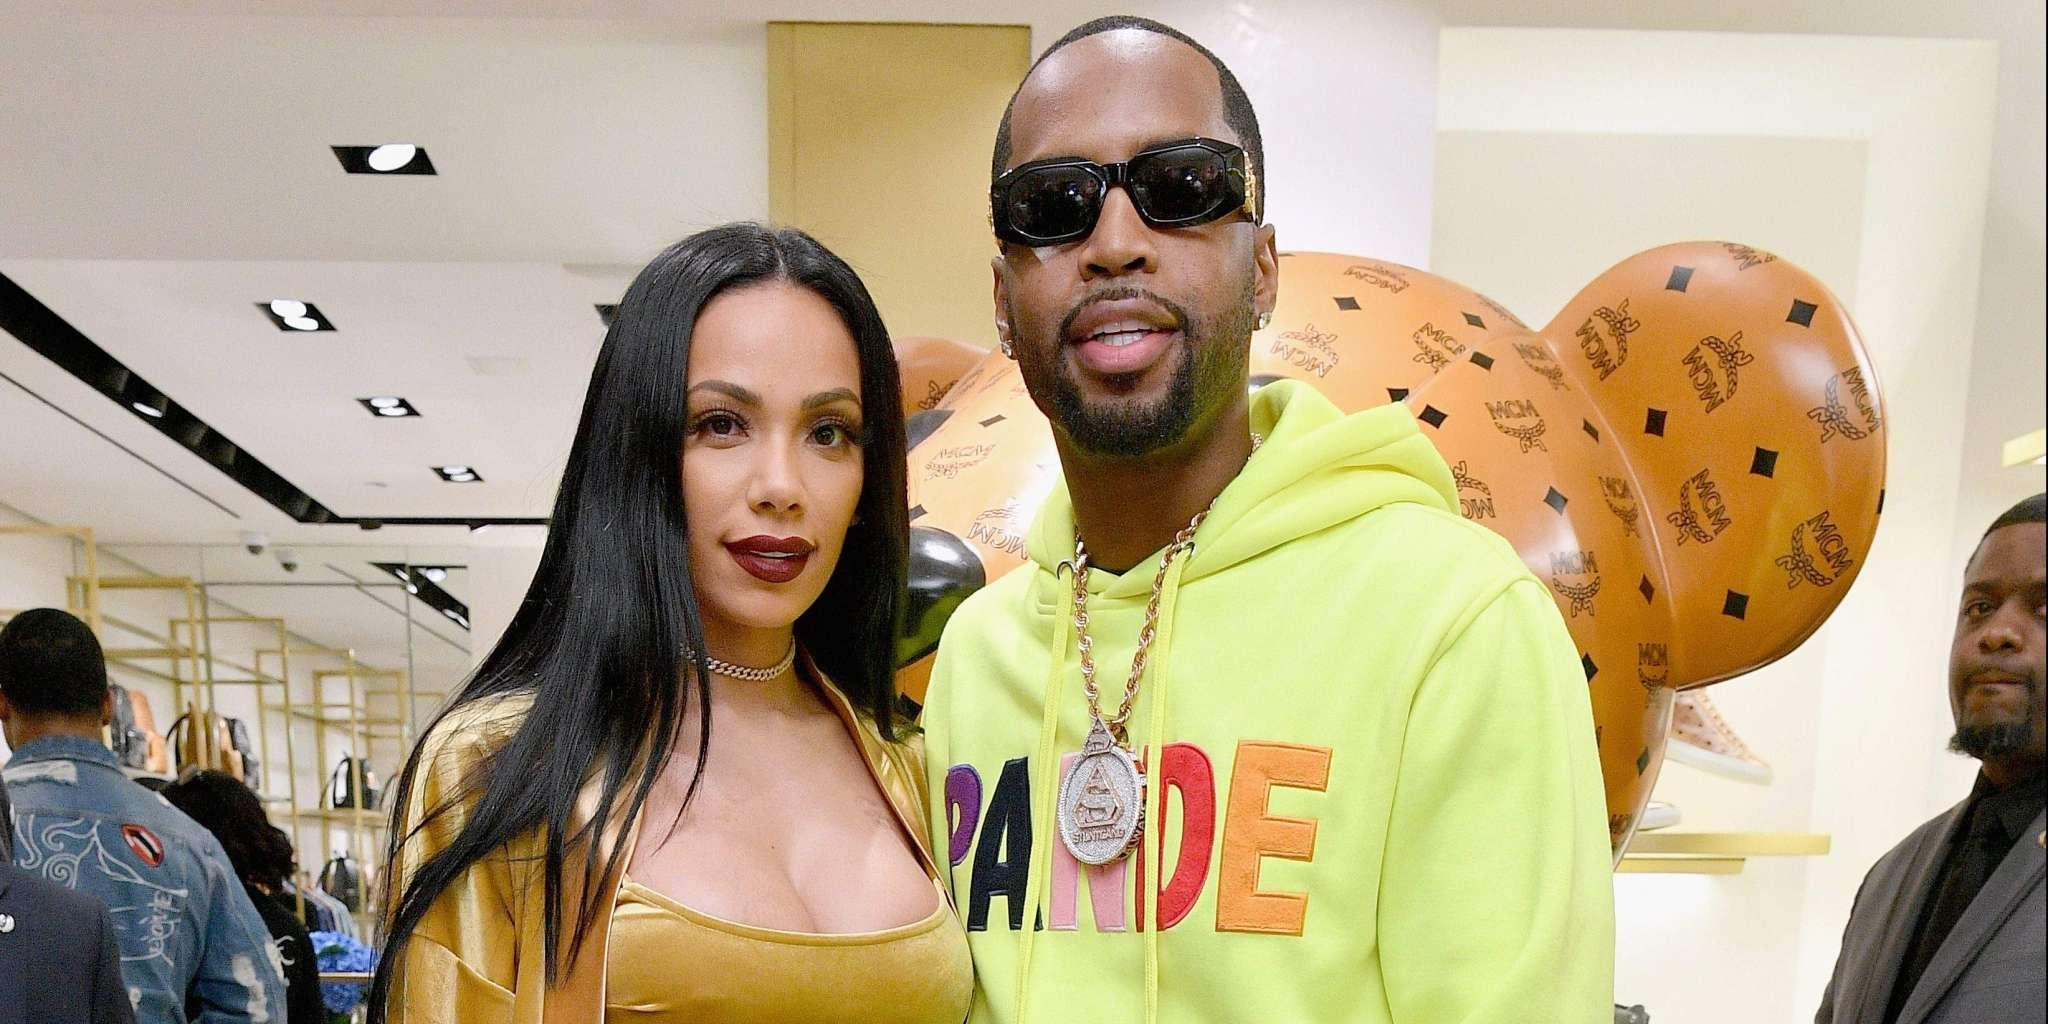 Safaree Drops His New Single, But Doesn't Receive The Feedback He Expected